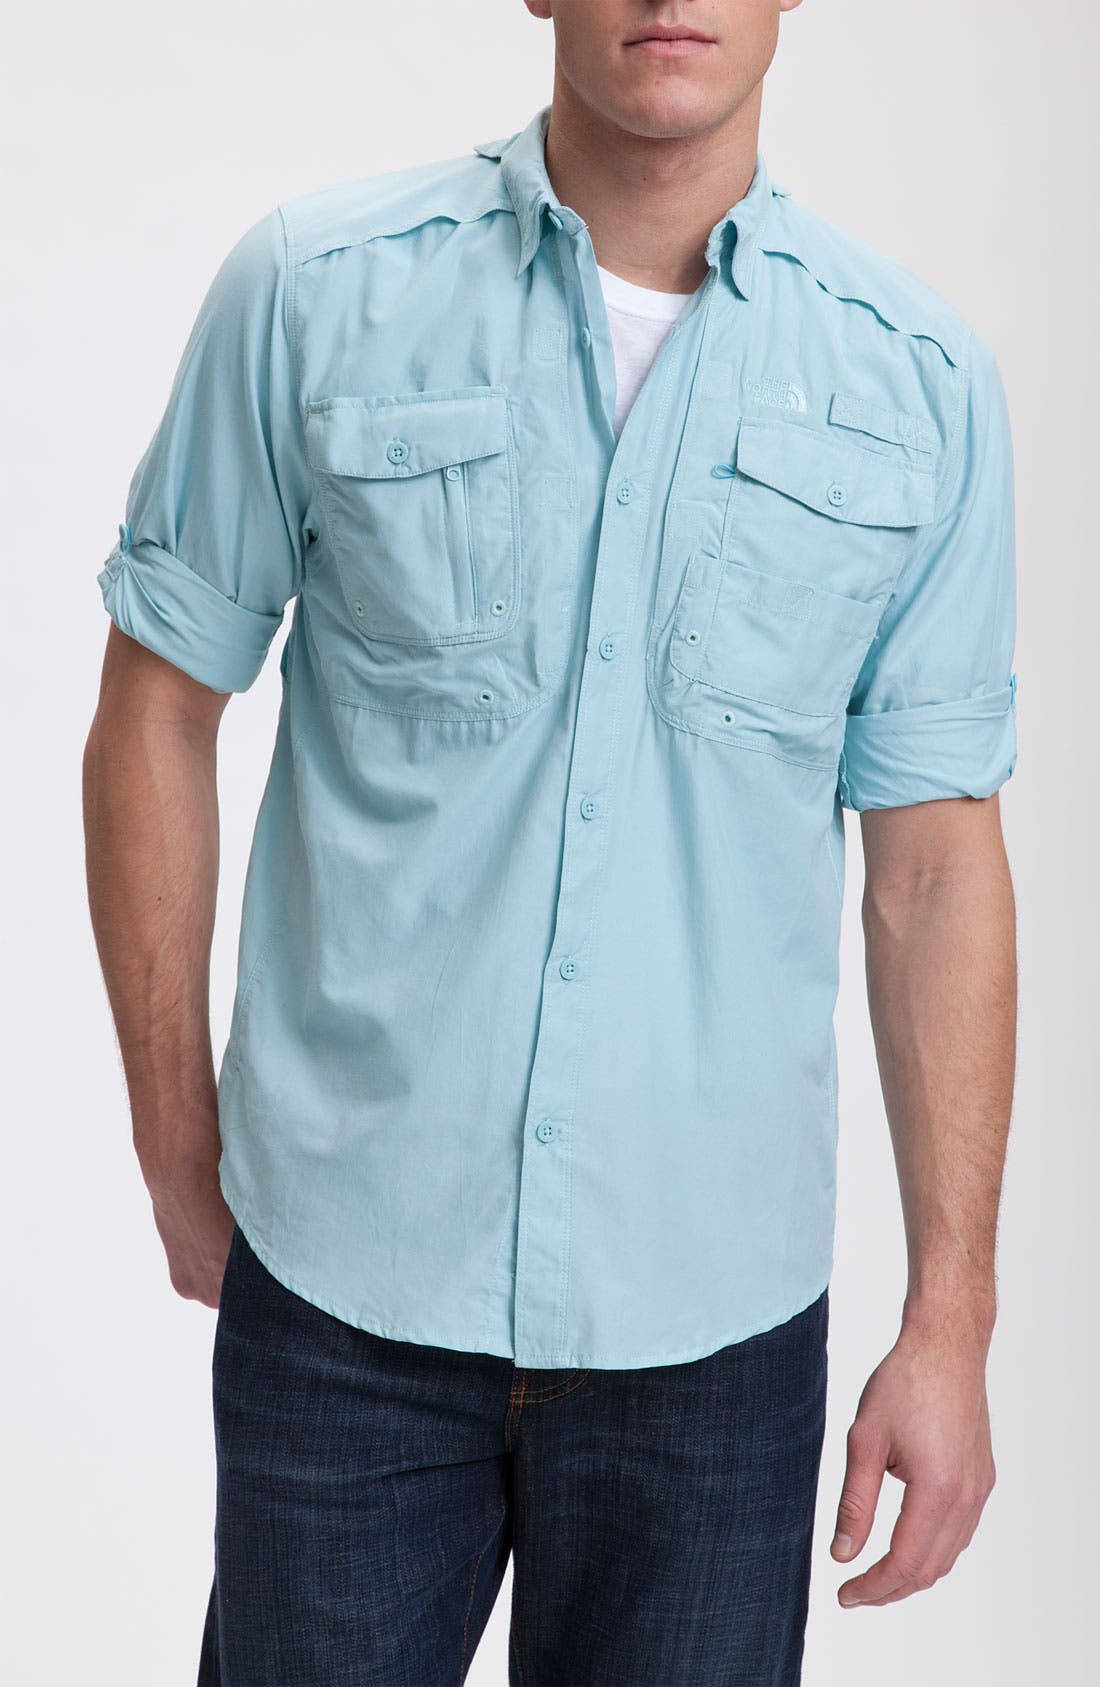 Alternate Image 1 Selected - The North Face 'Pollock' Woven Shirt